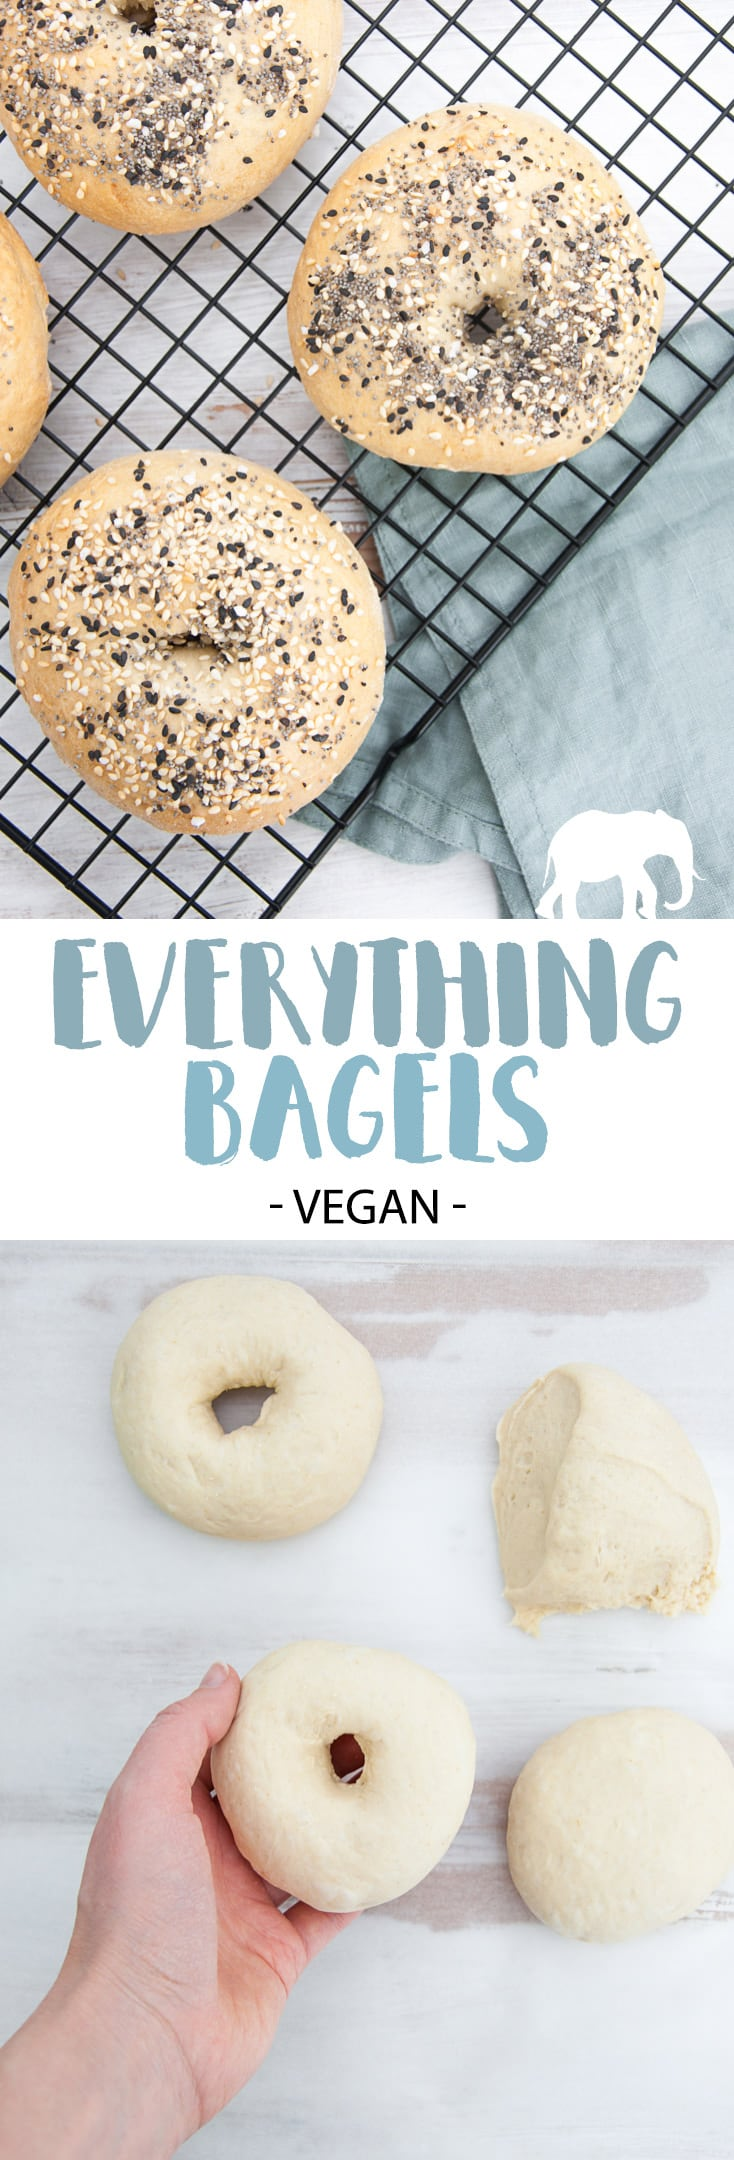 Everything Bagels - easy to make at home! | ElephantasticVegan.com #vegan #bagels #everything #bread